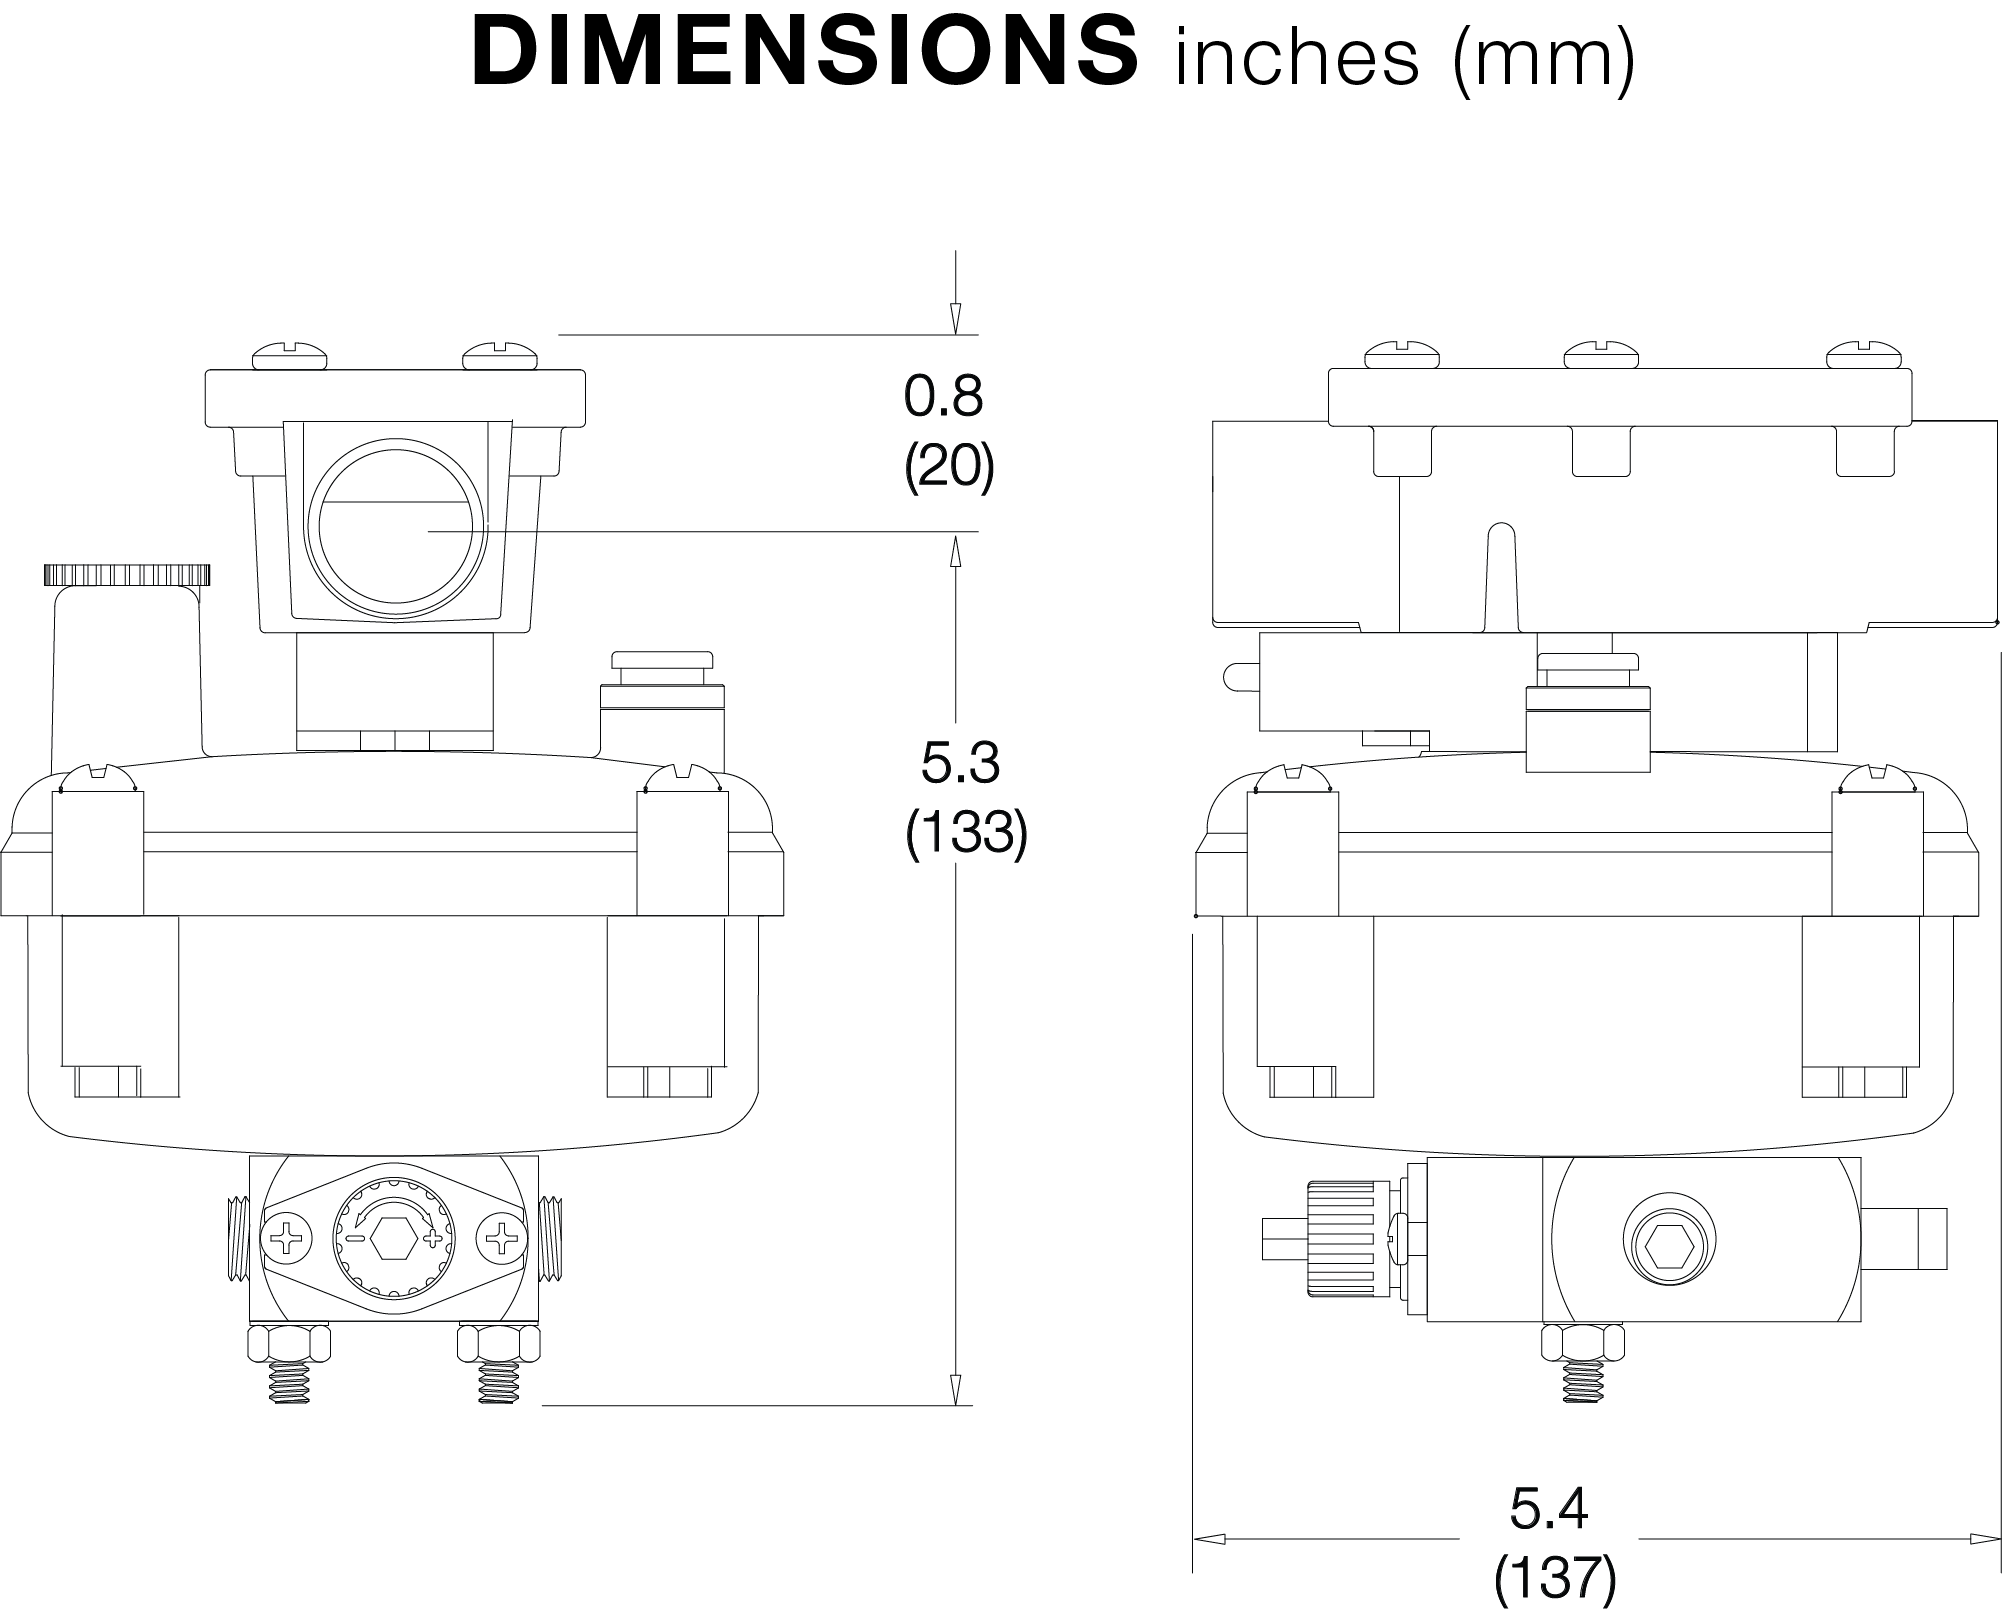 DIMENSIONS FOR PA640